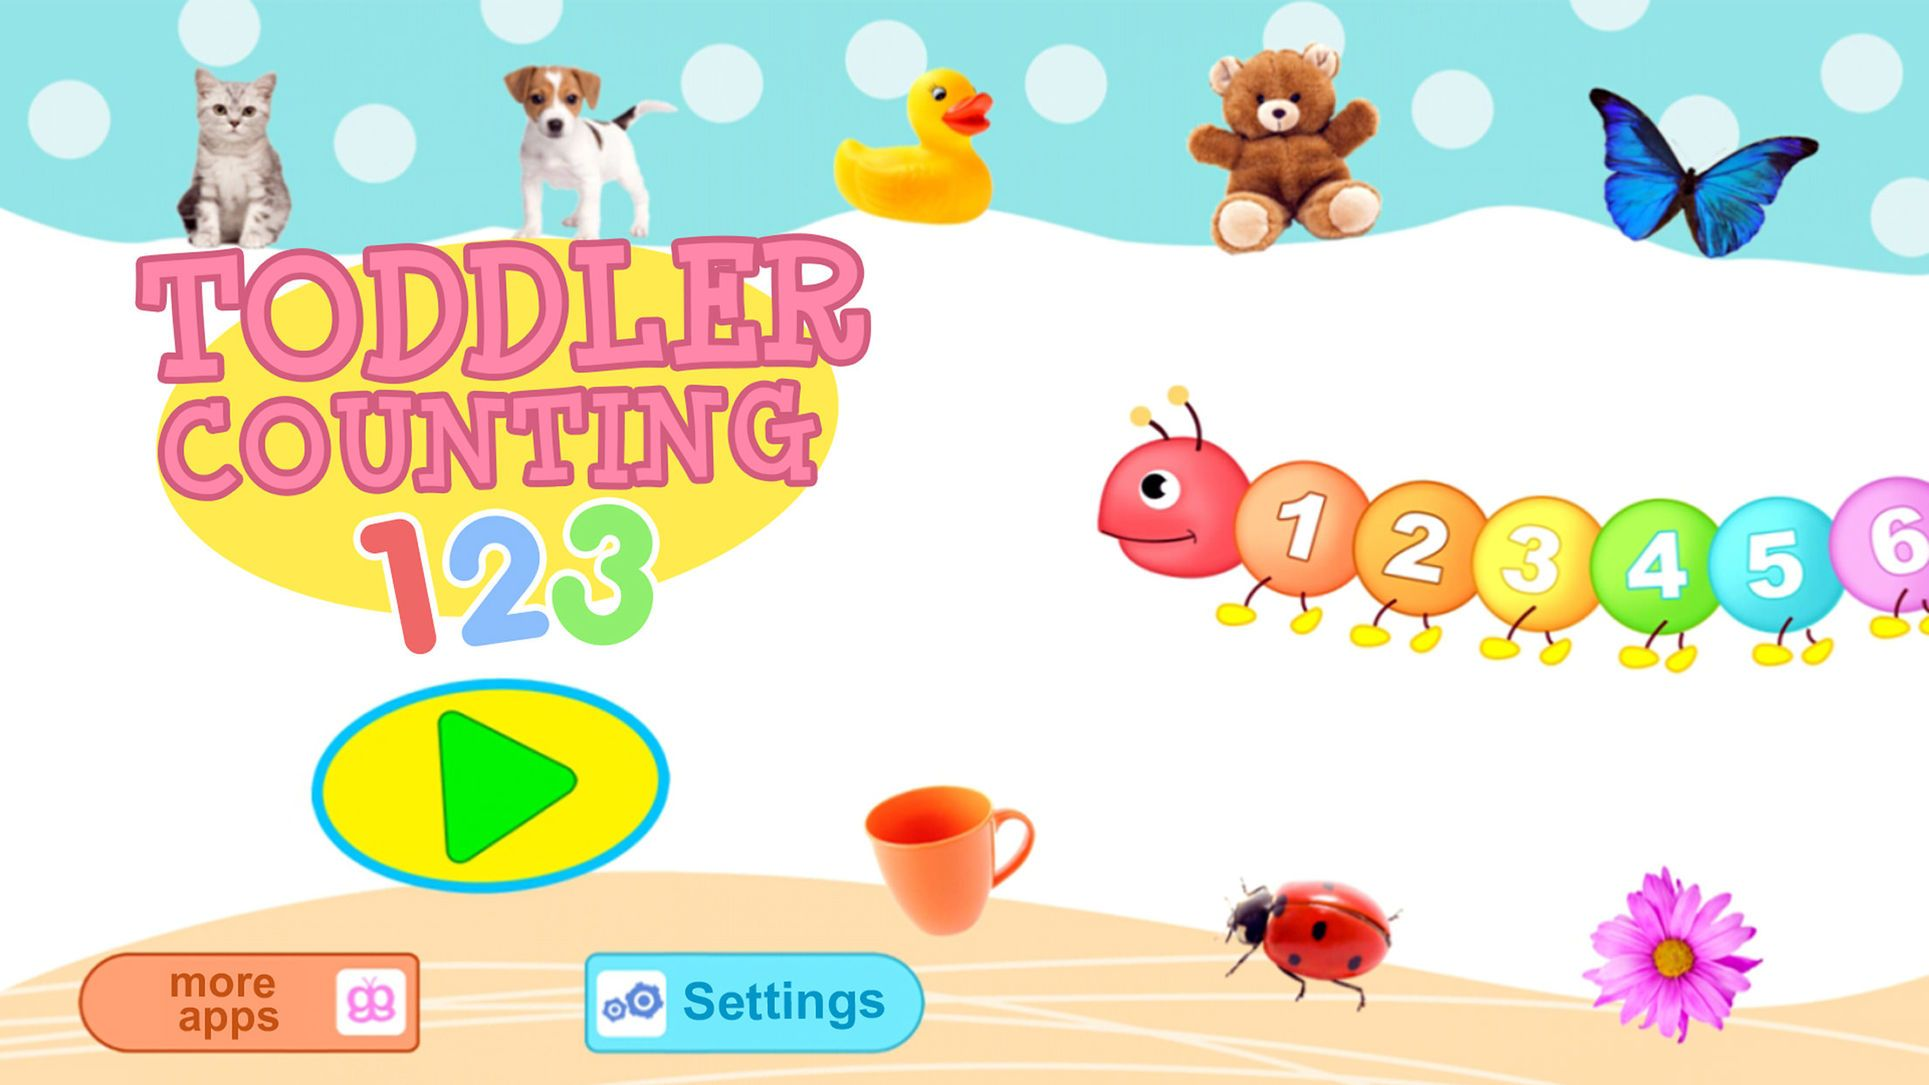 Toddler Counting 123 Learn To Count For Kids Apps Kids Giggleup Pty Counting For Kids Counting For Toddlers Educational Games For Preschoolers